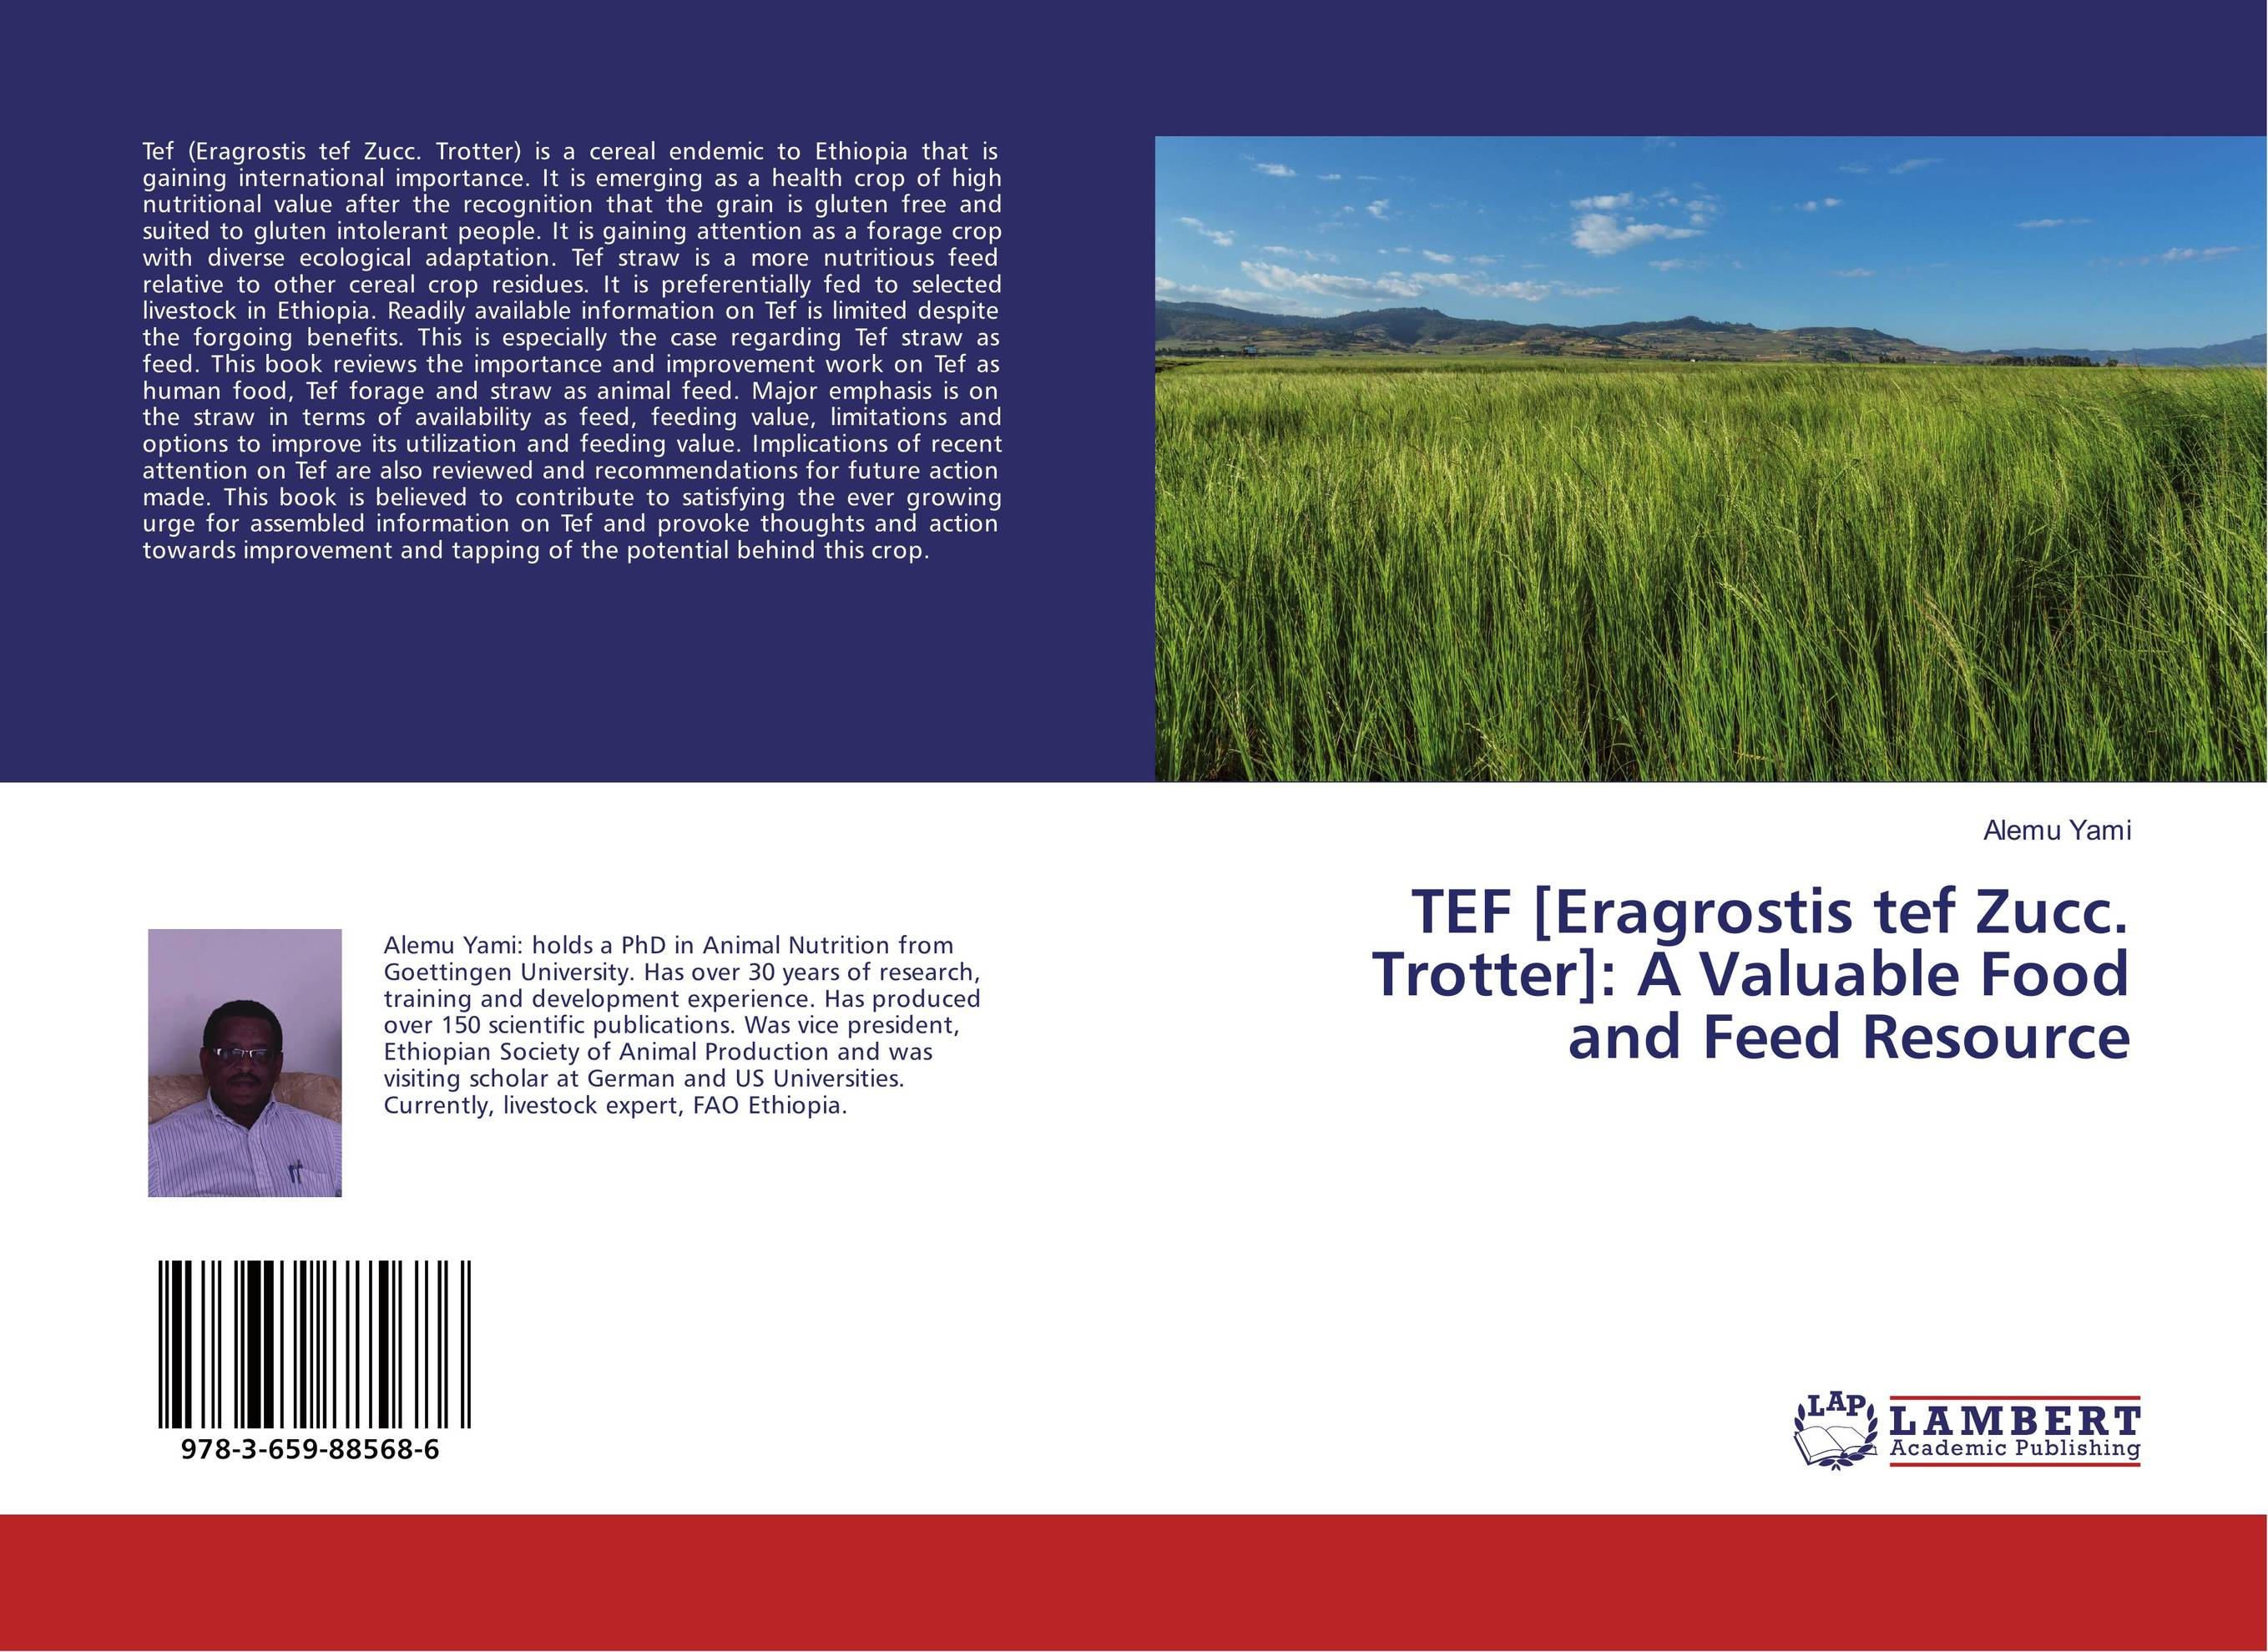 TEF [Eragrostis tef Zucc. Trotter]: A Valuable Food and Feed Resource lacywear платье s 41 tef